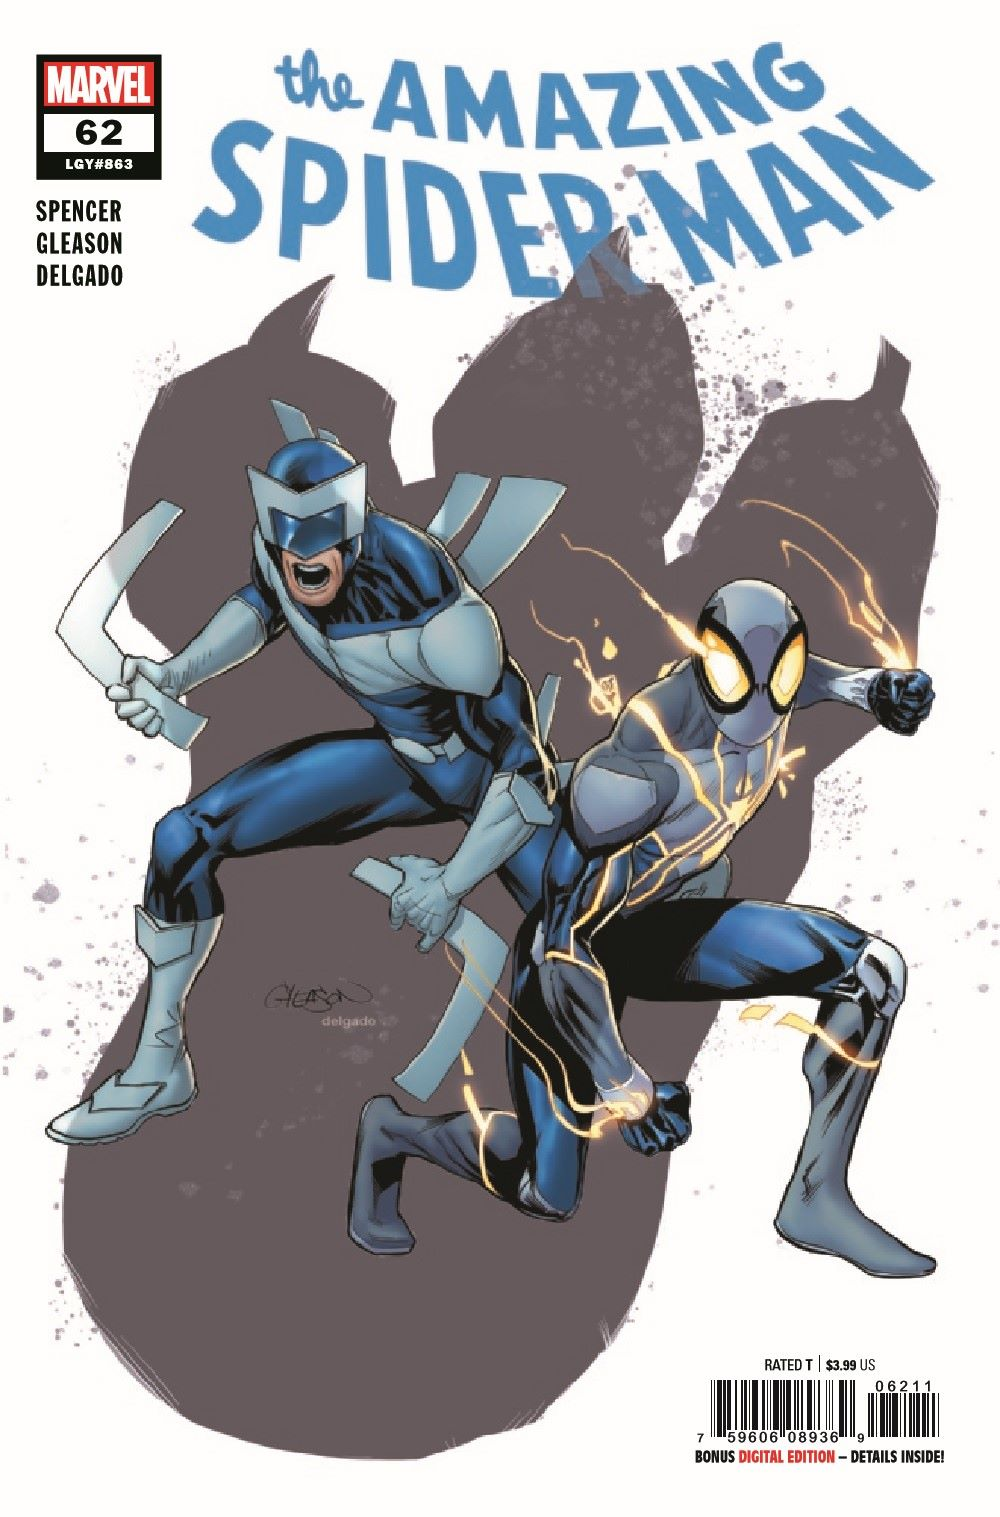 ASM2018062_Preview-1 ComicList Previews: THE AMAZING SPIDER-MAN #62